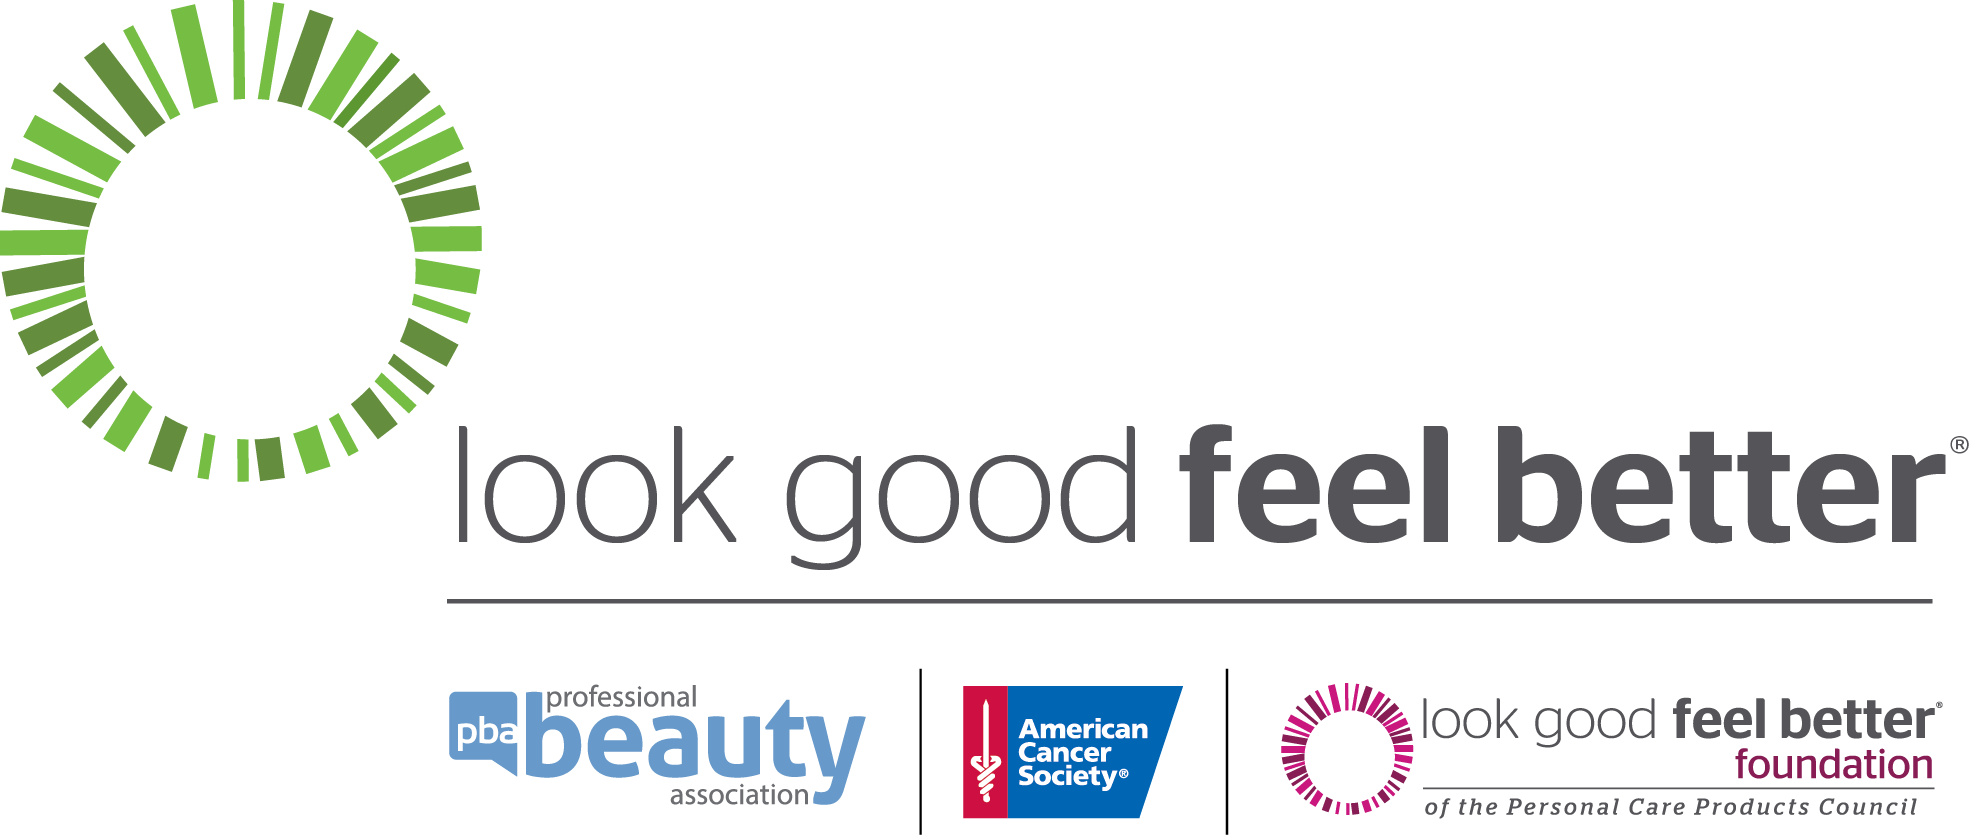 Look Good Feel Better for Teens | Helping Teens With Cancer » Feed